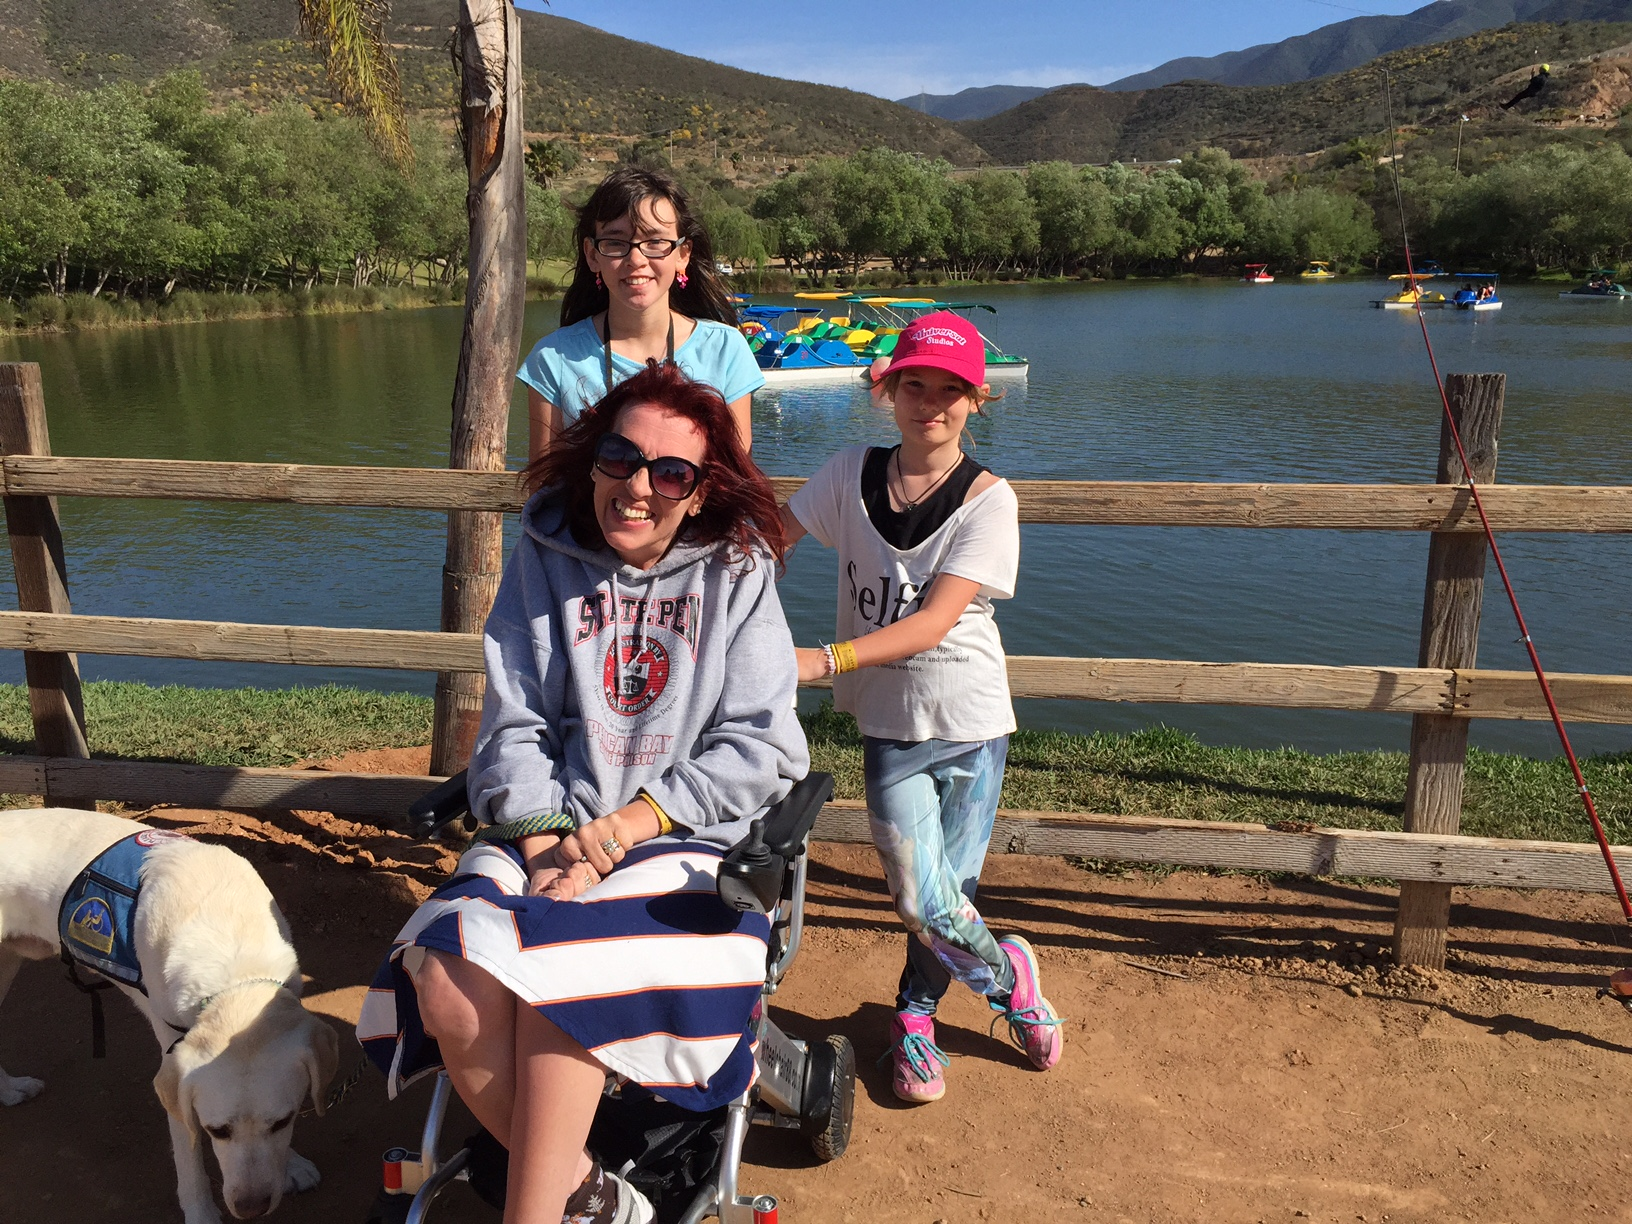 Picture of Aleta with her two daughters she is sitting in a wheelchair smiling and her two daughters are behind her standing and there is a lake behind them